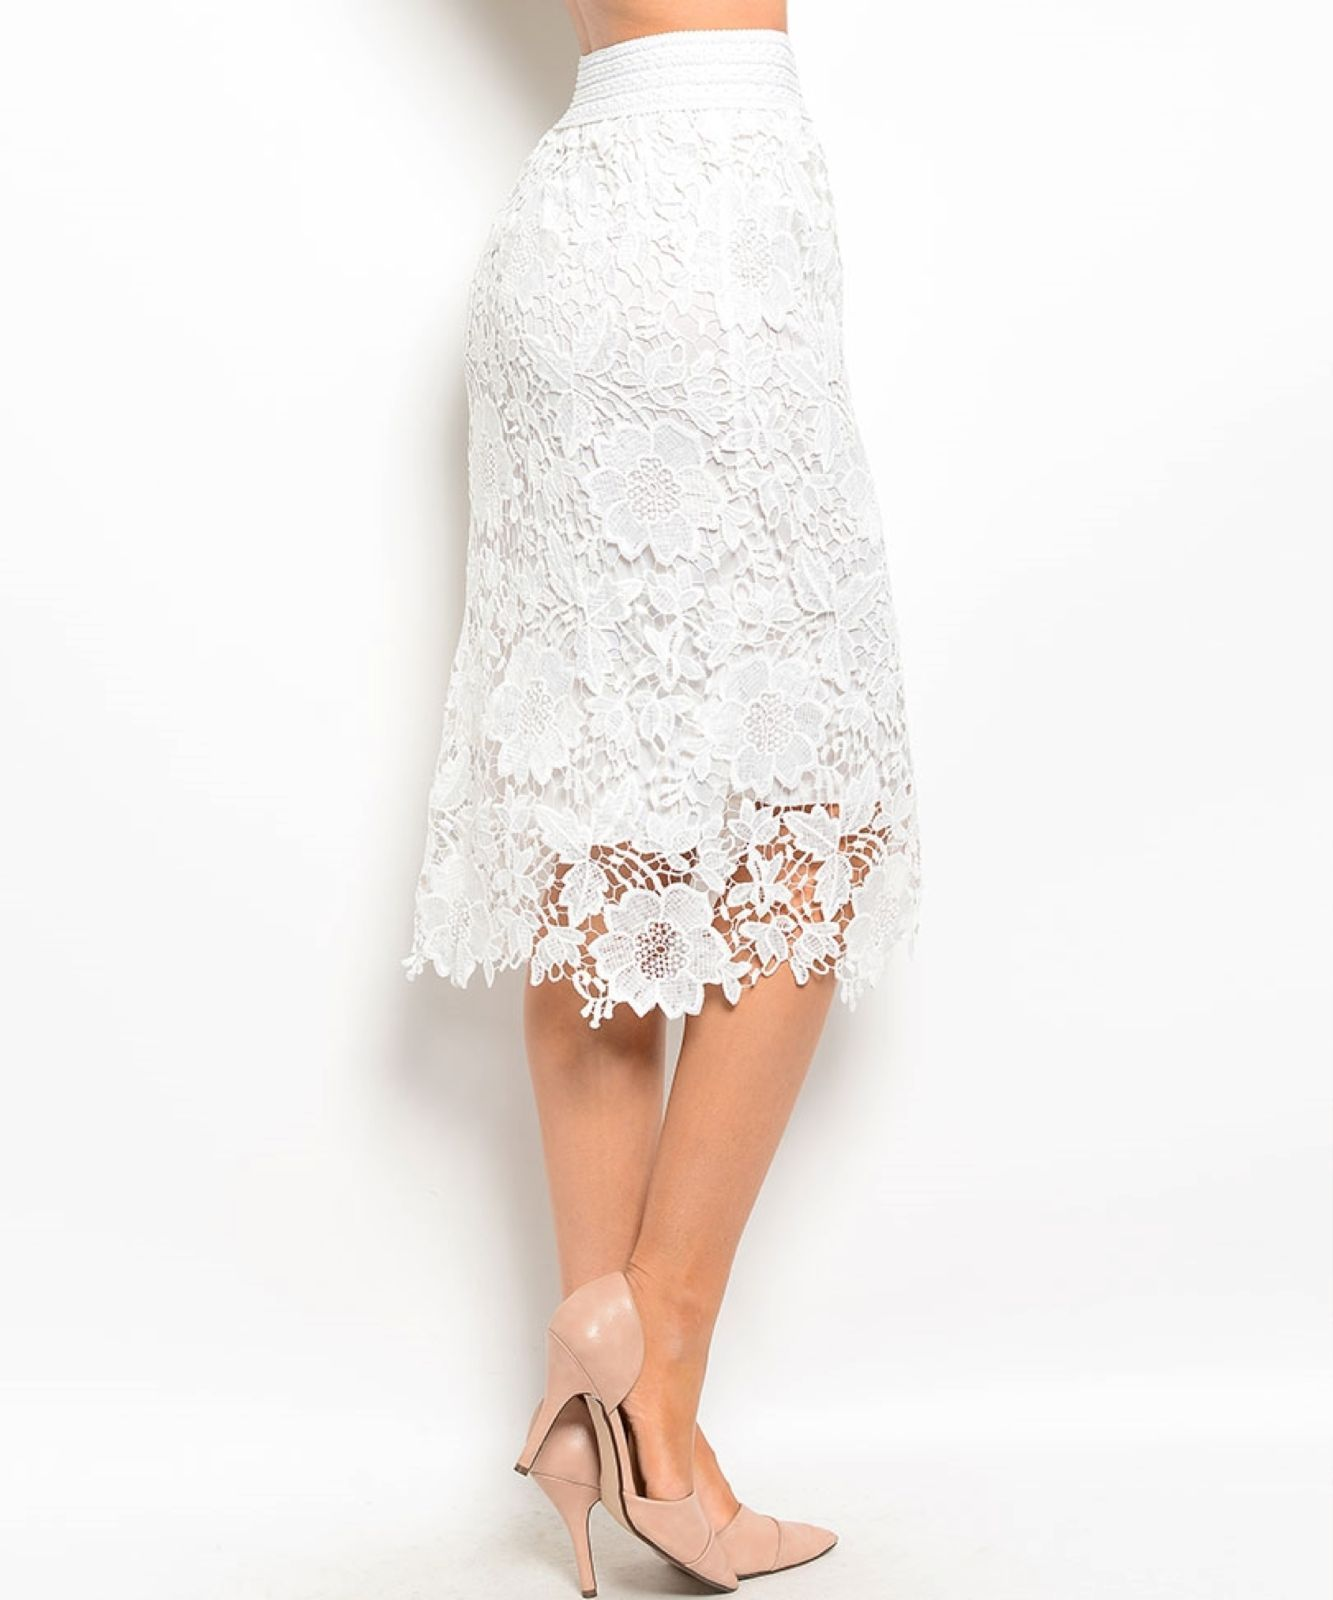 Image 5 of Chic Crochet Lace Lined Jr Skirt, Cocktail Club Party, Black, Ivory or White - B